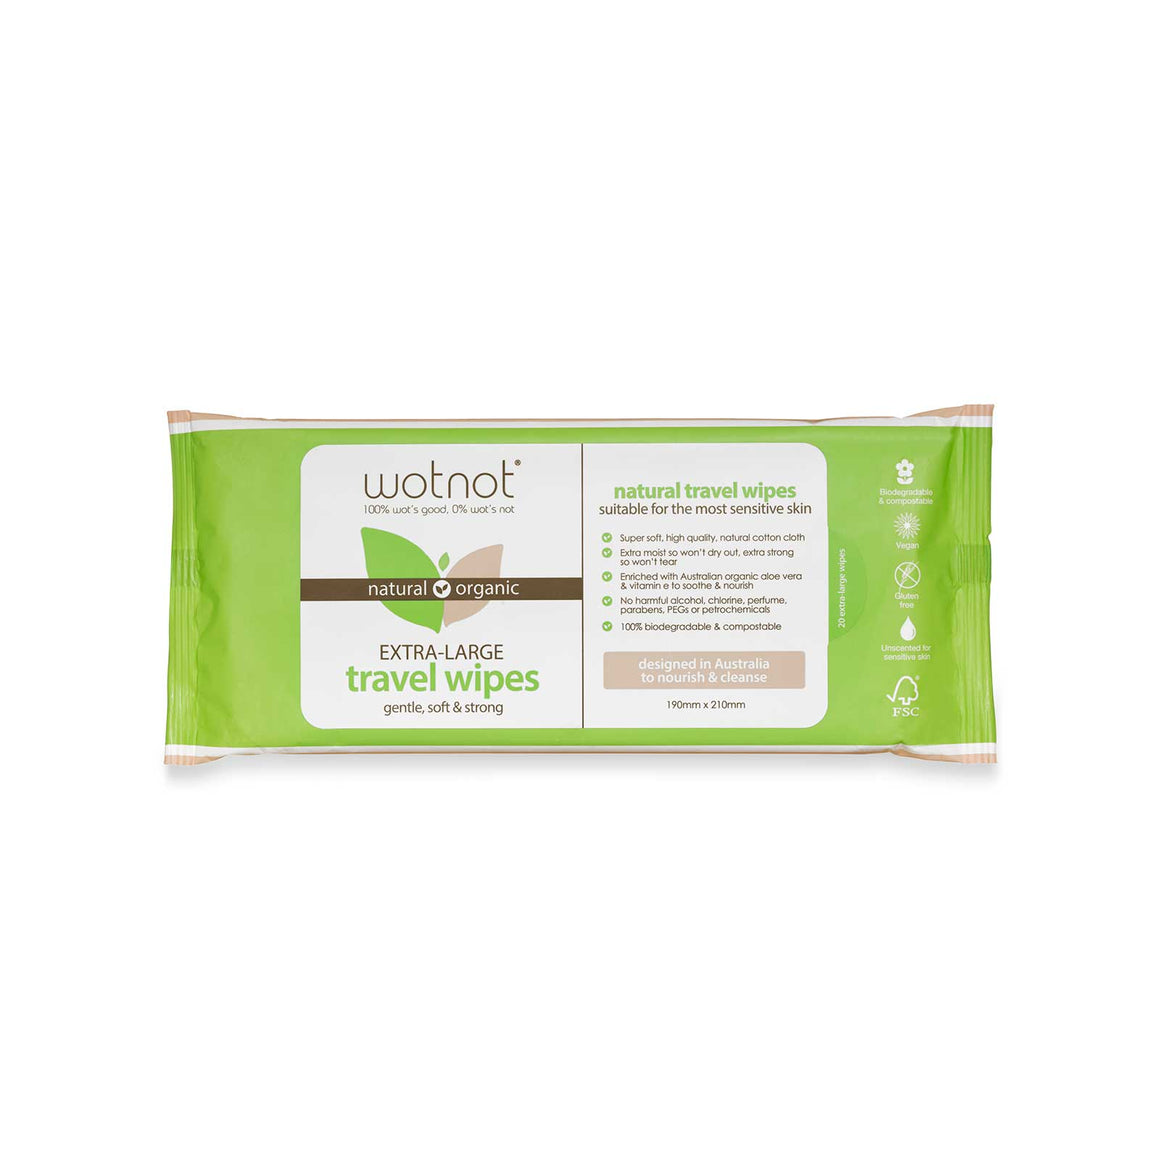 Wotnot Natural Travel Wipes - Soft Pack 20 sheets